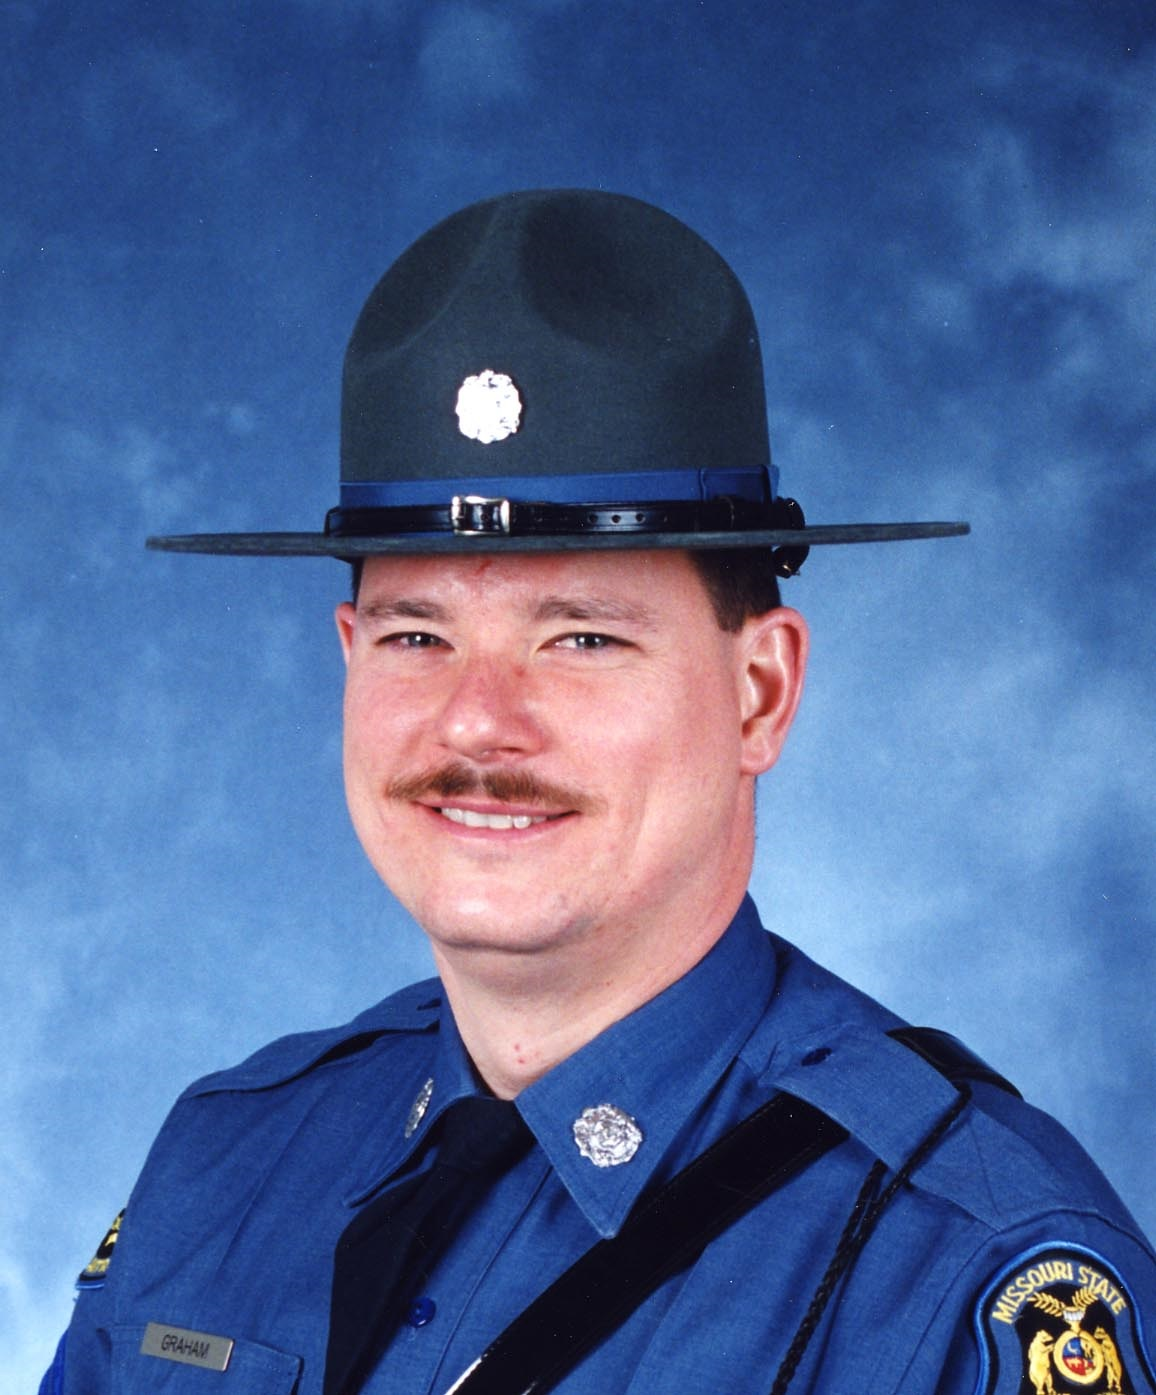 Sergeant Carl Dewayne Graham, Jr. | Missouri State Highway Patrol, Missouri